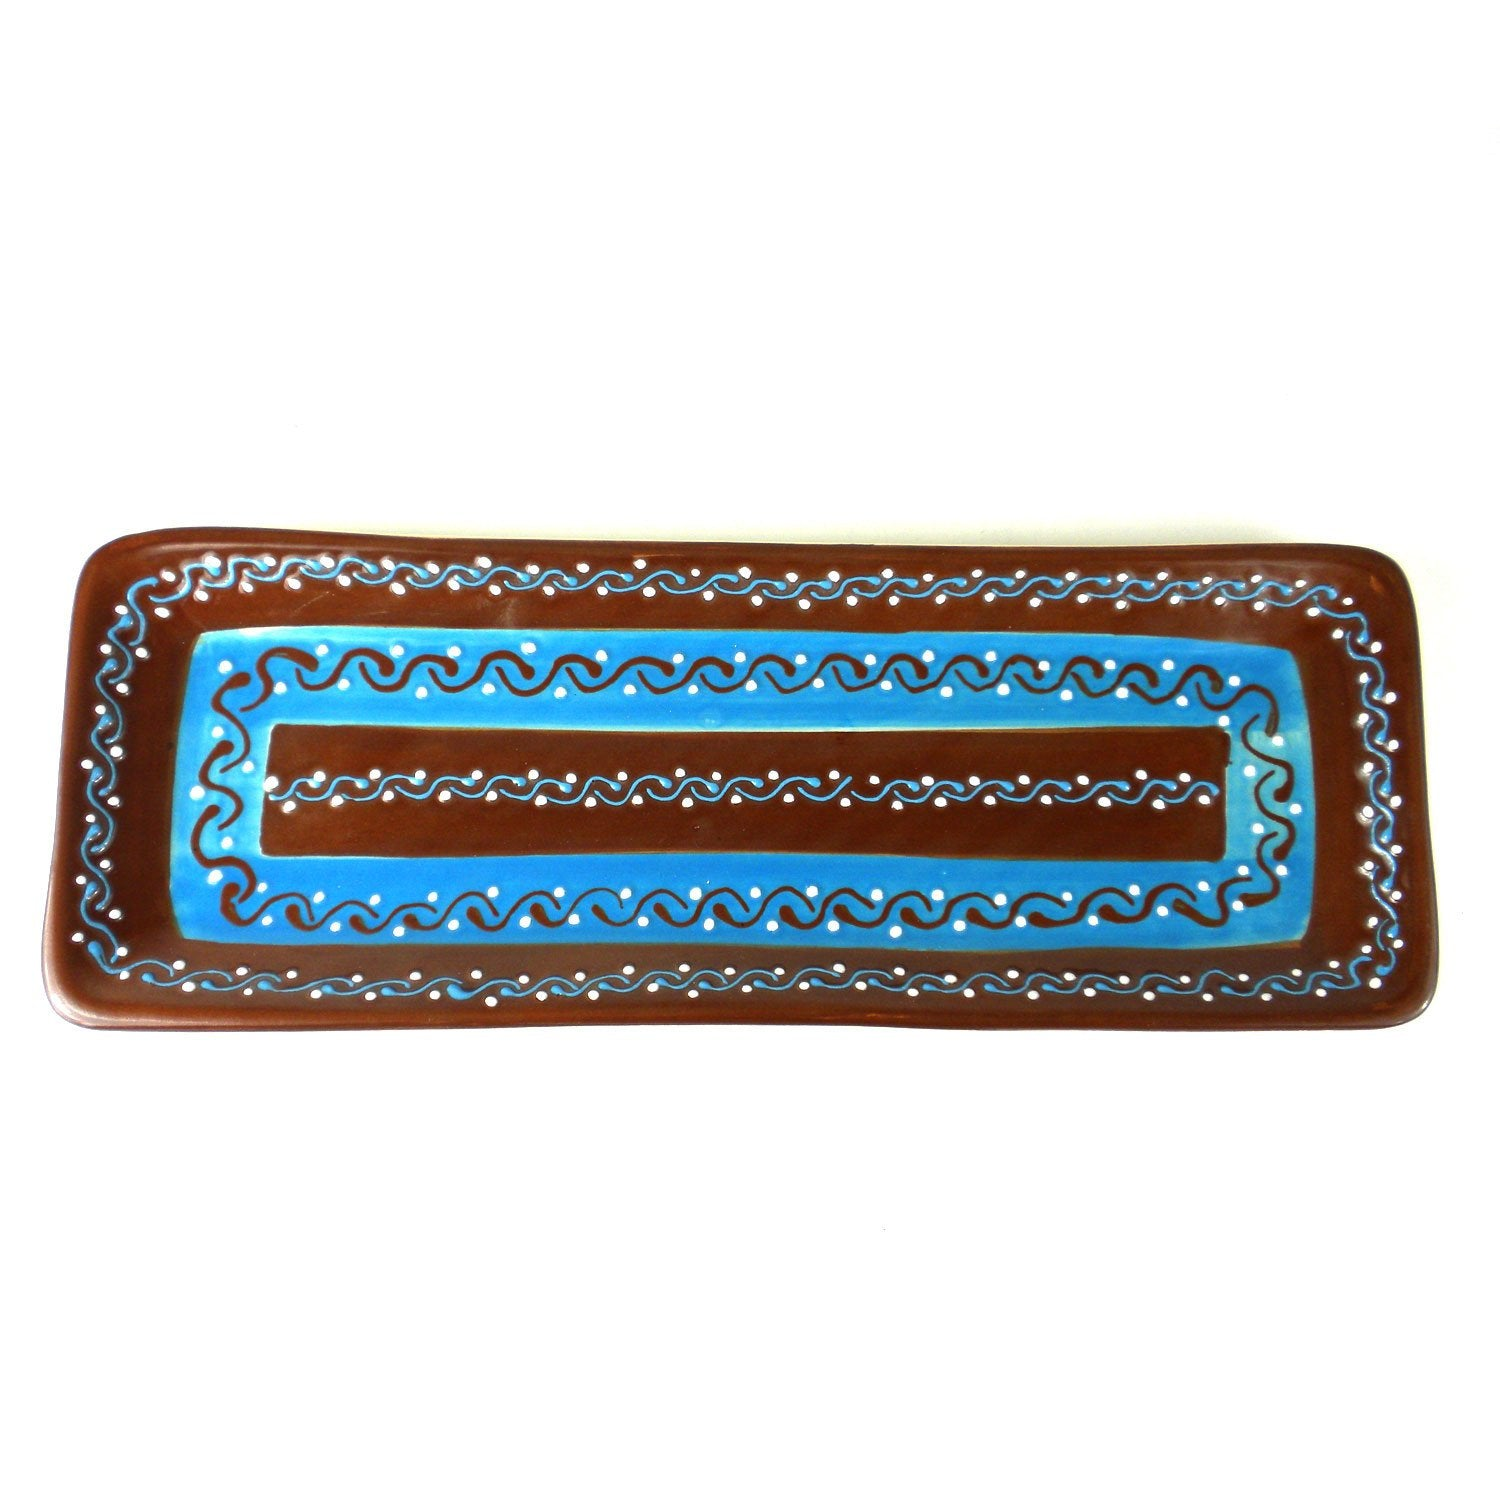 "Encantada Handmade Pottery 16"" Rectangular Serving Platter, Chocolate"